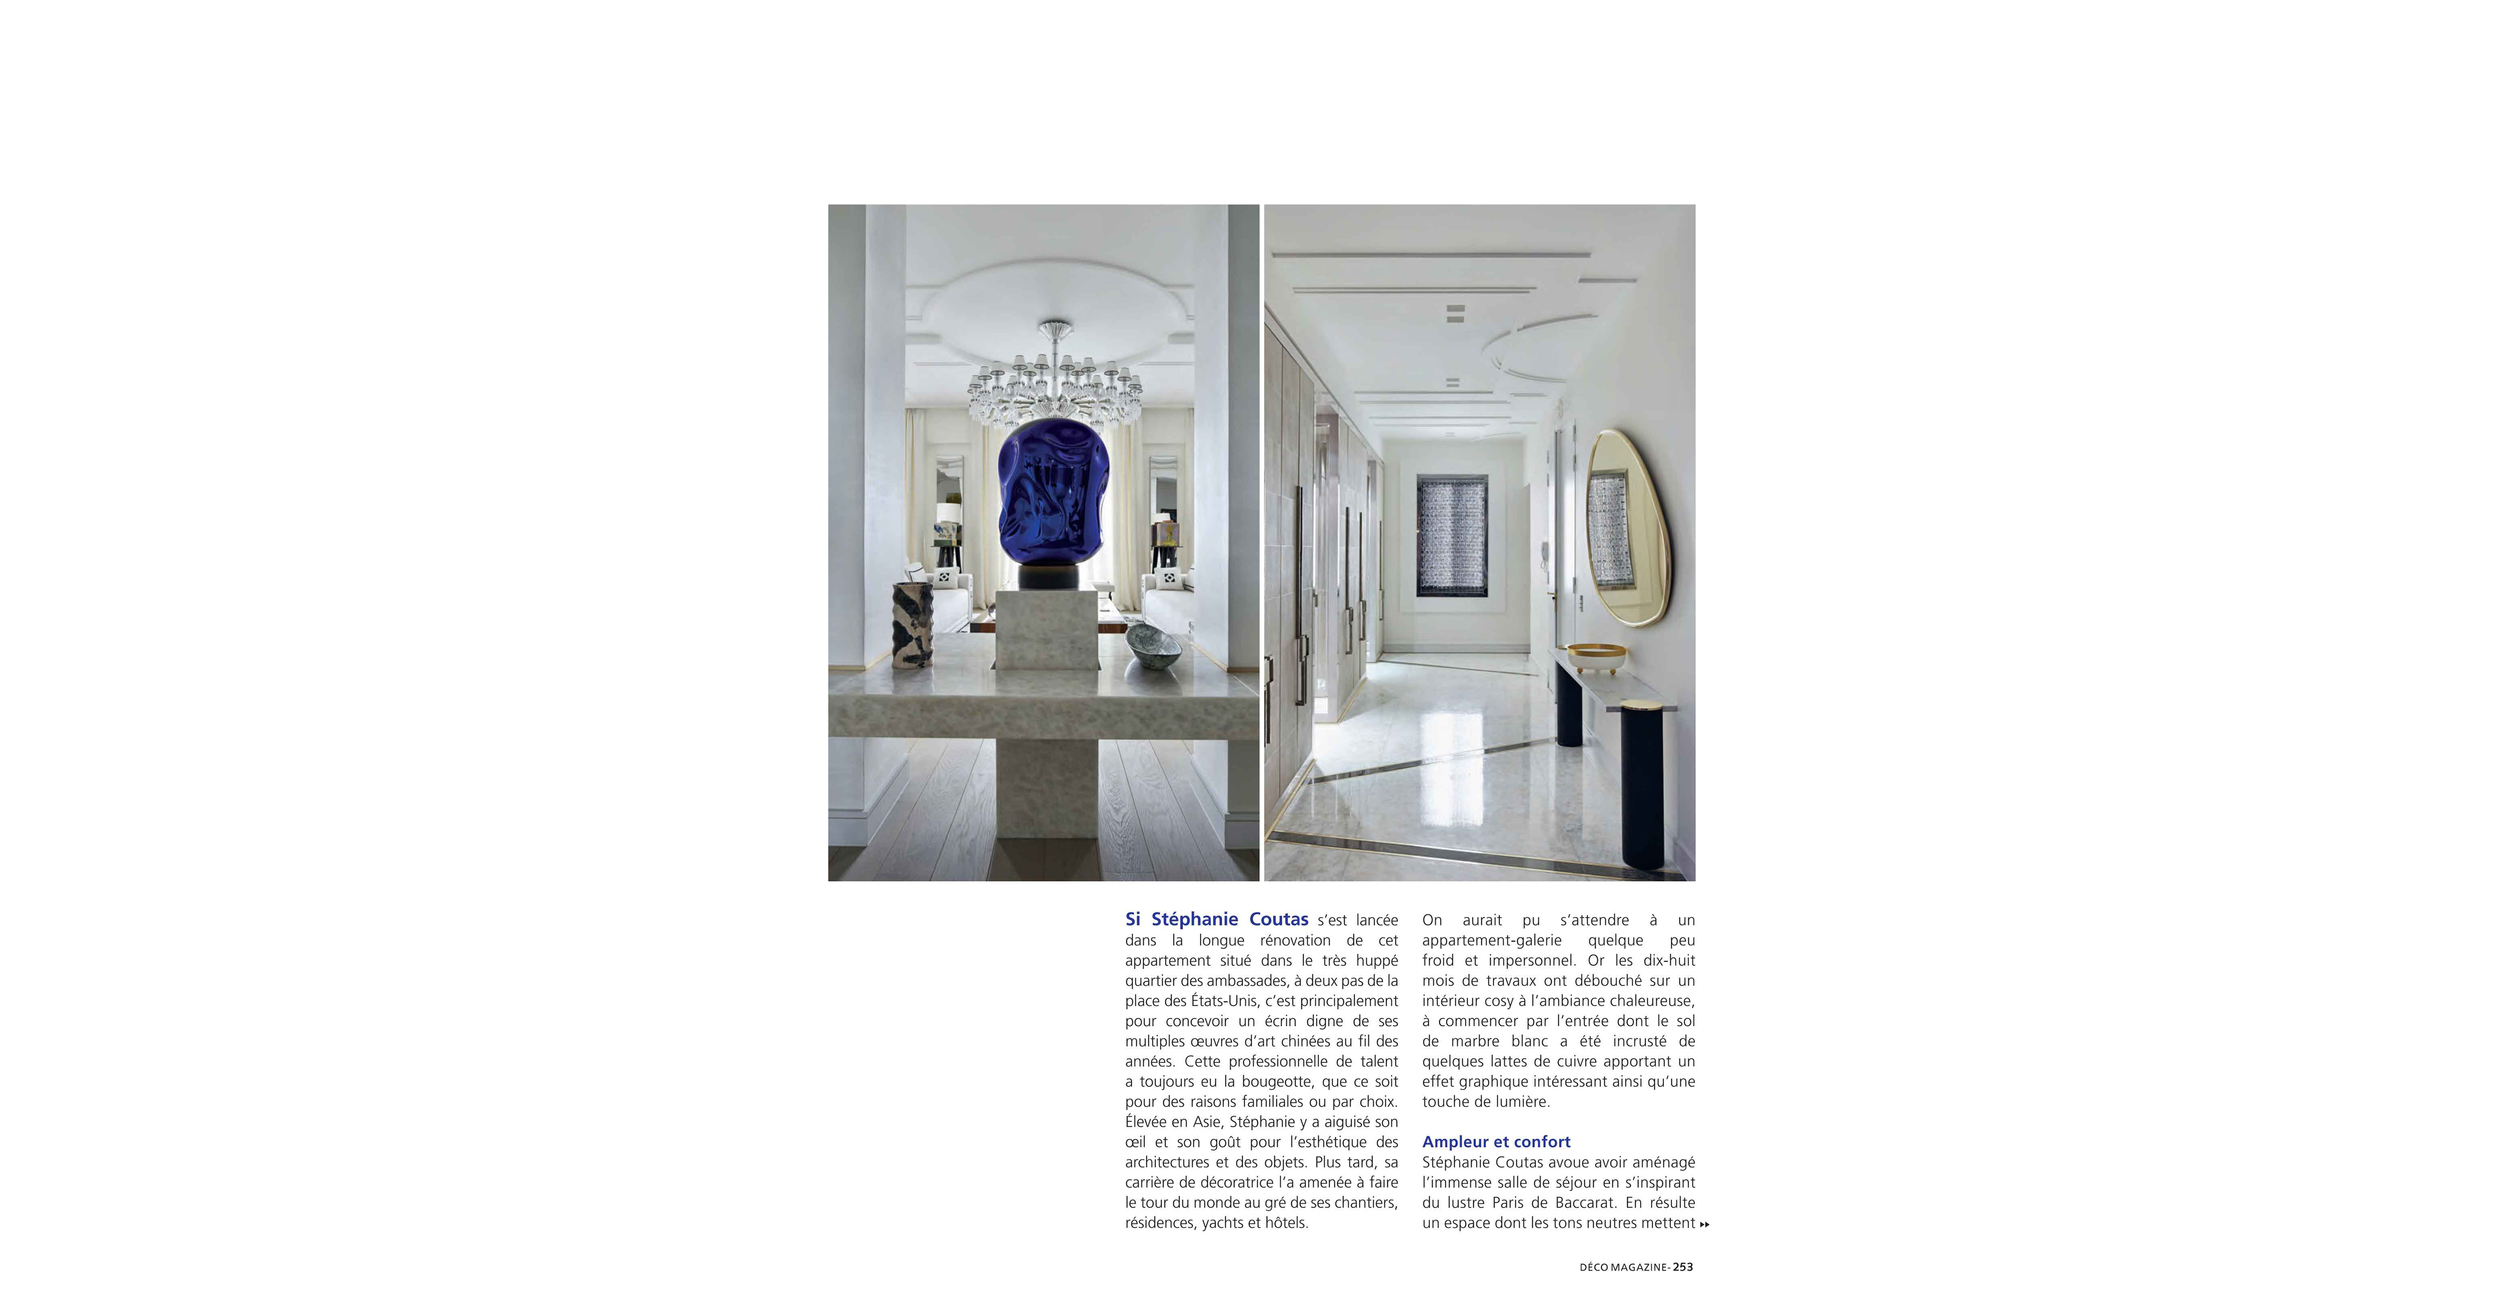 Architecture D'intérieur Débouchés The Kidthe Kid In Deco Architecture Design Magazine Lebanon